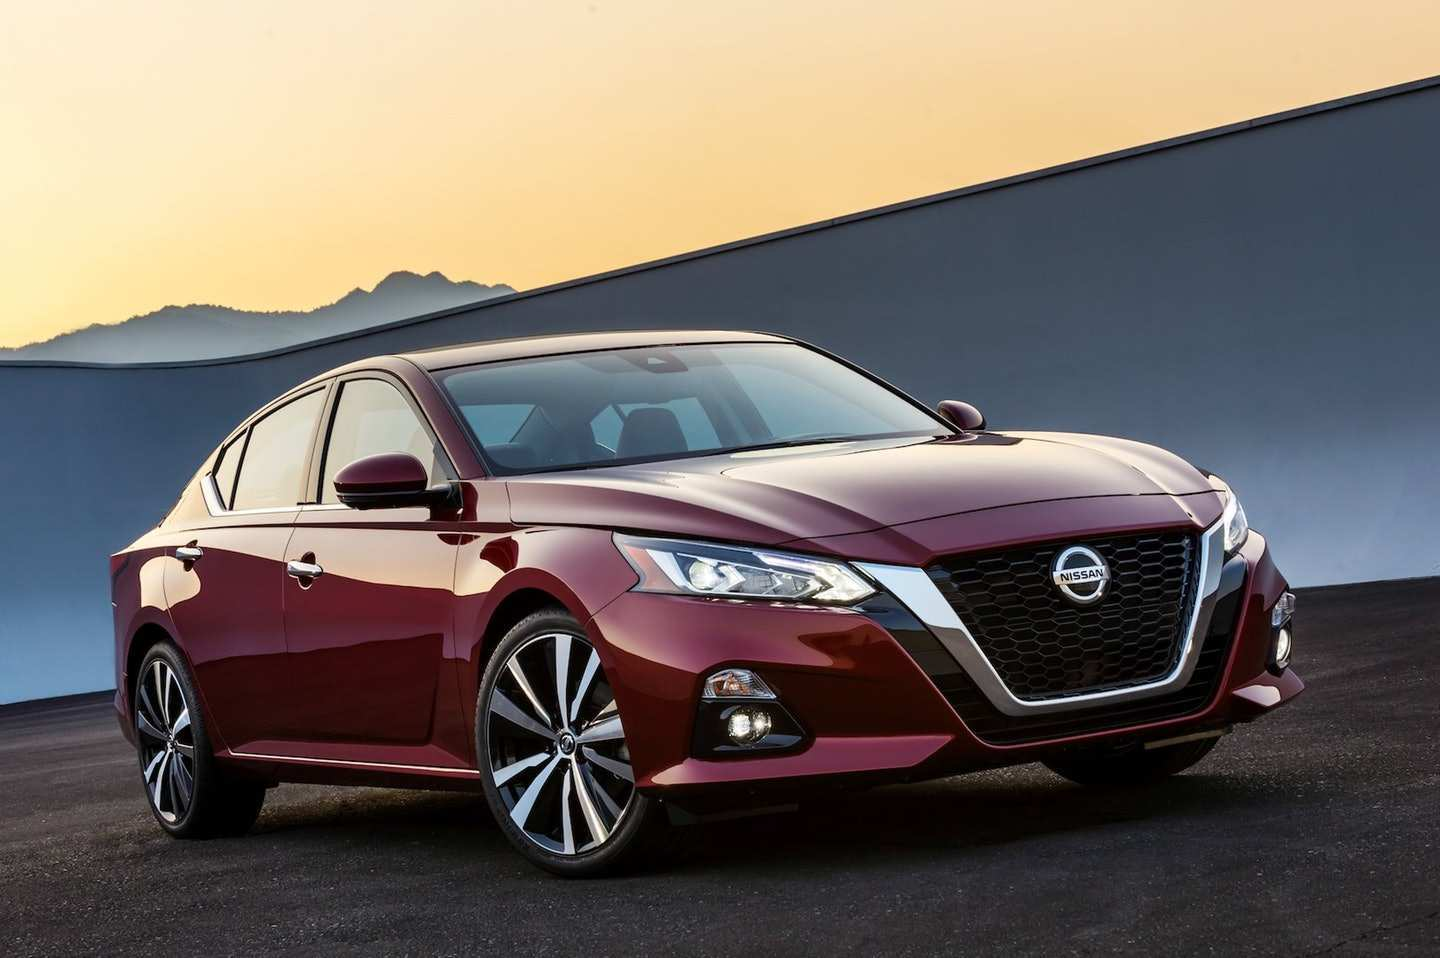 98 Best Review New Nissan Altima 2019 Price New Interior Price and Review by New Nissan Altima 2019 Price New Interior